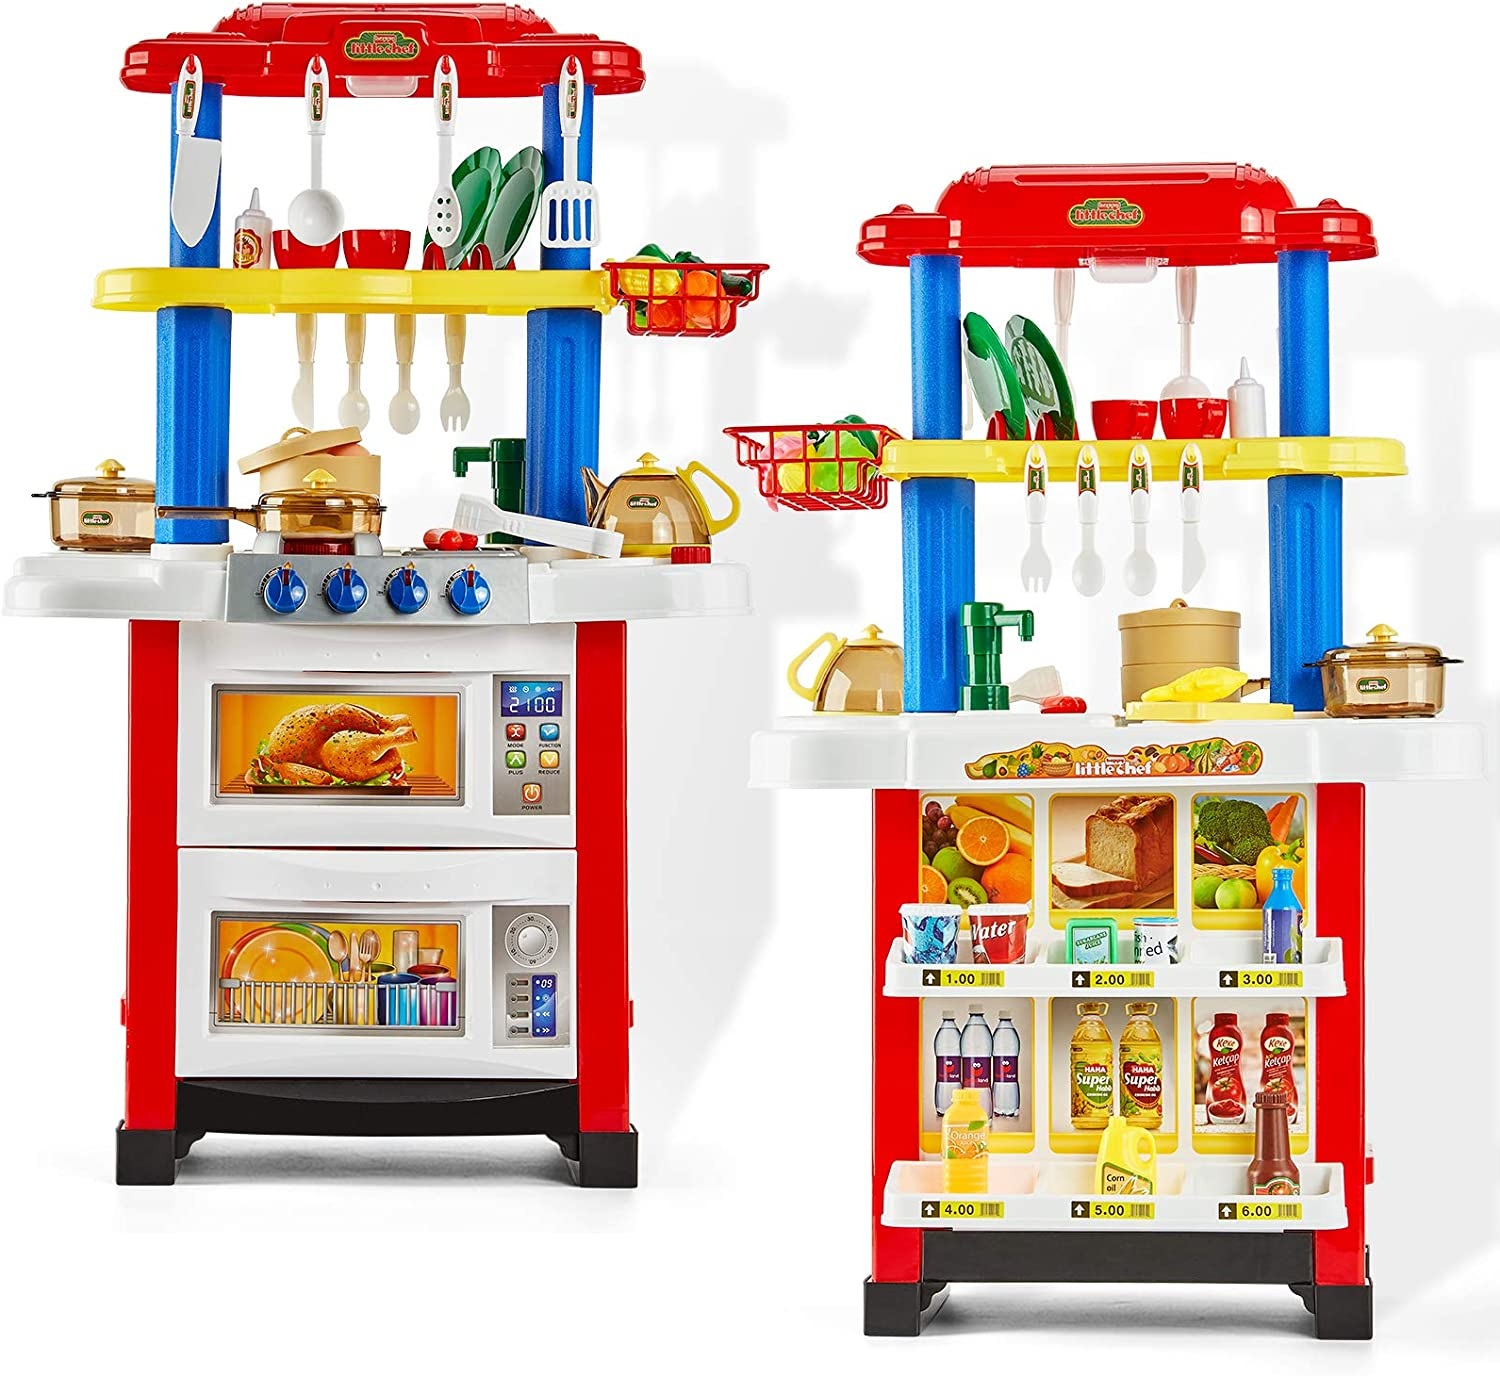 Play Kitchen Set for Kids Double Sided Kids Kitchen Set and Vending Machine with Spray Lights Sounds Effect Washing Machine Toys for 3 Year Old Girls Birthday Gifts Toys for 4 5 Year Old Girls Boys